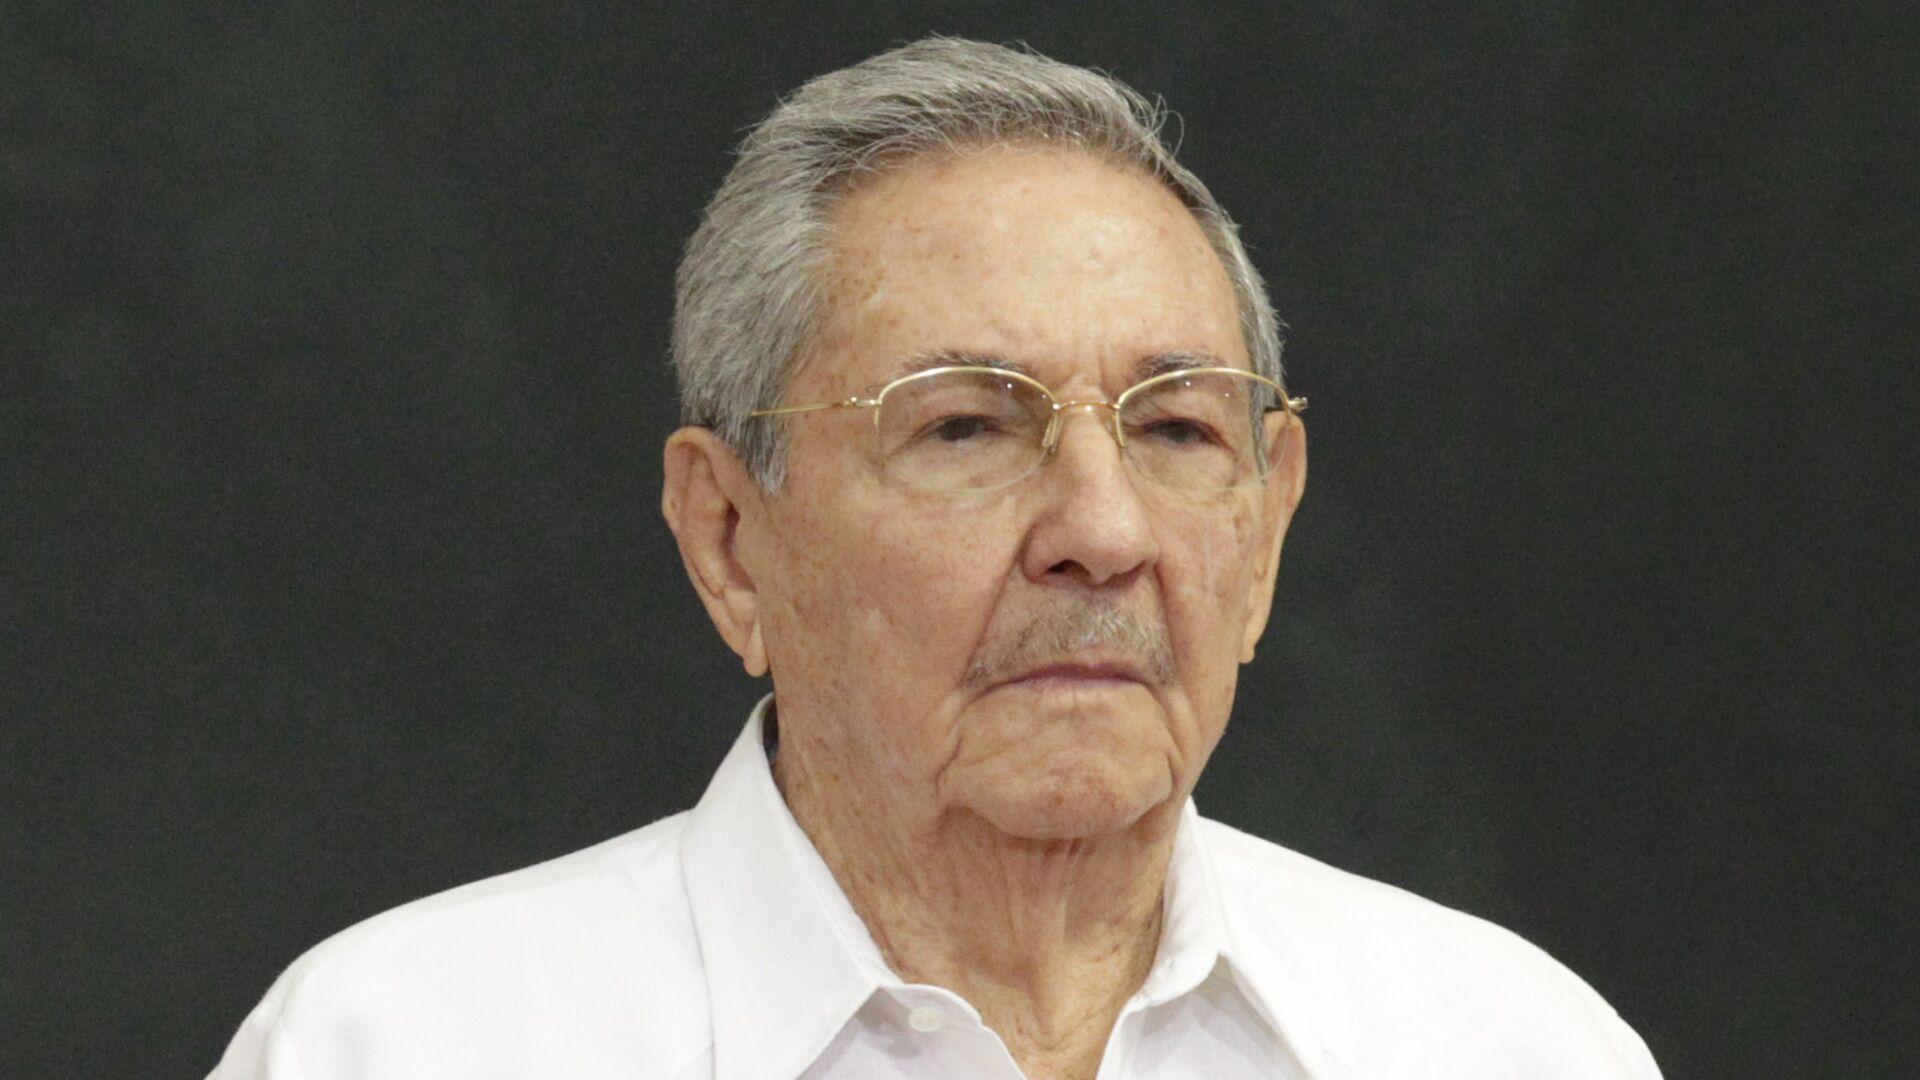 Cuba's President Raul Castro attends an official welcoming ceremony for him, at the Yucatan State Government Palace in Merida, Mexico - Sputnik Mundo, 1920, 16.04.2021